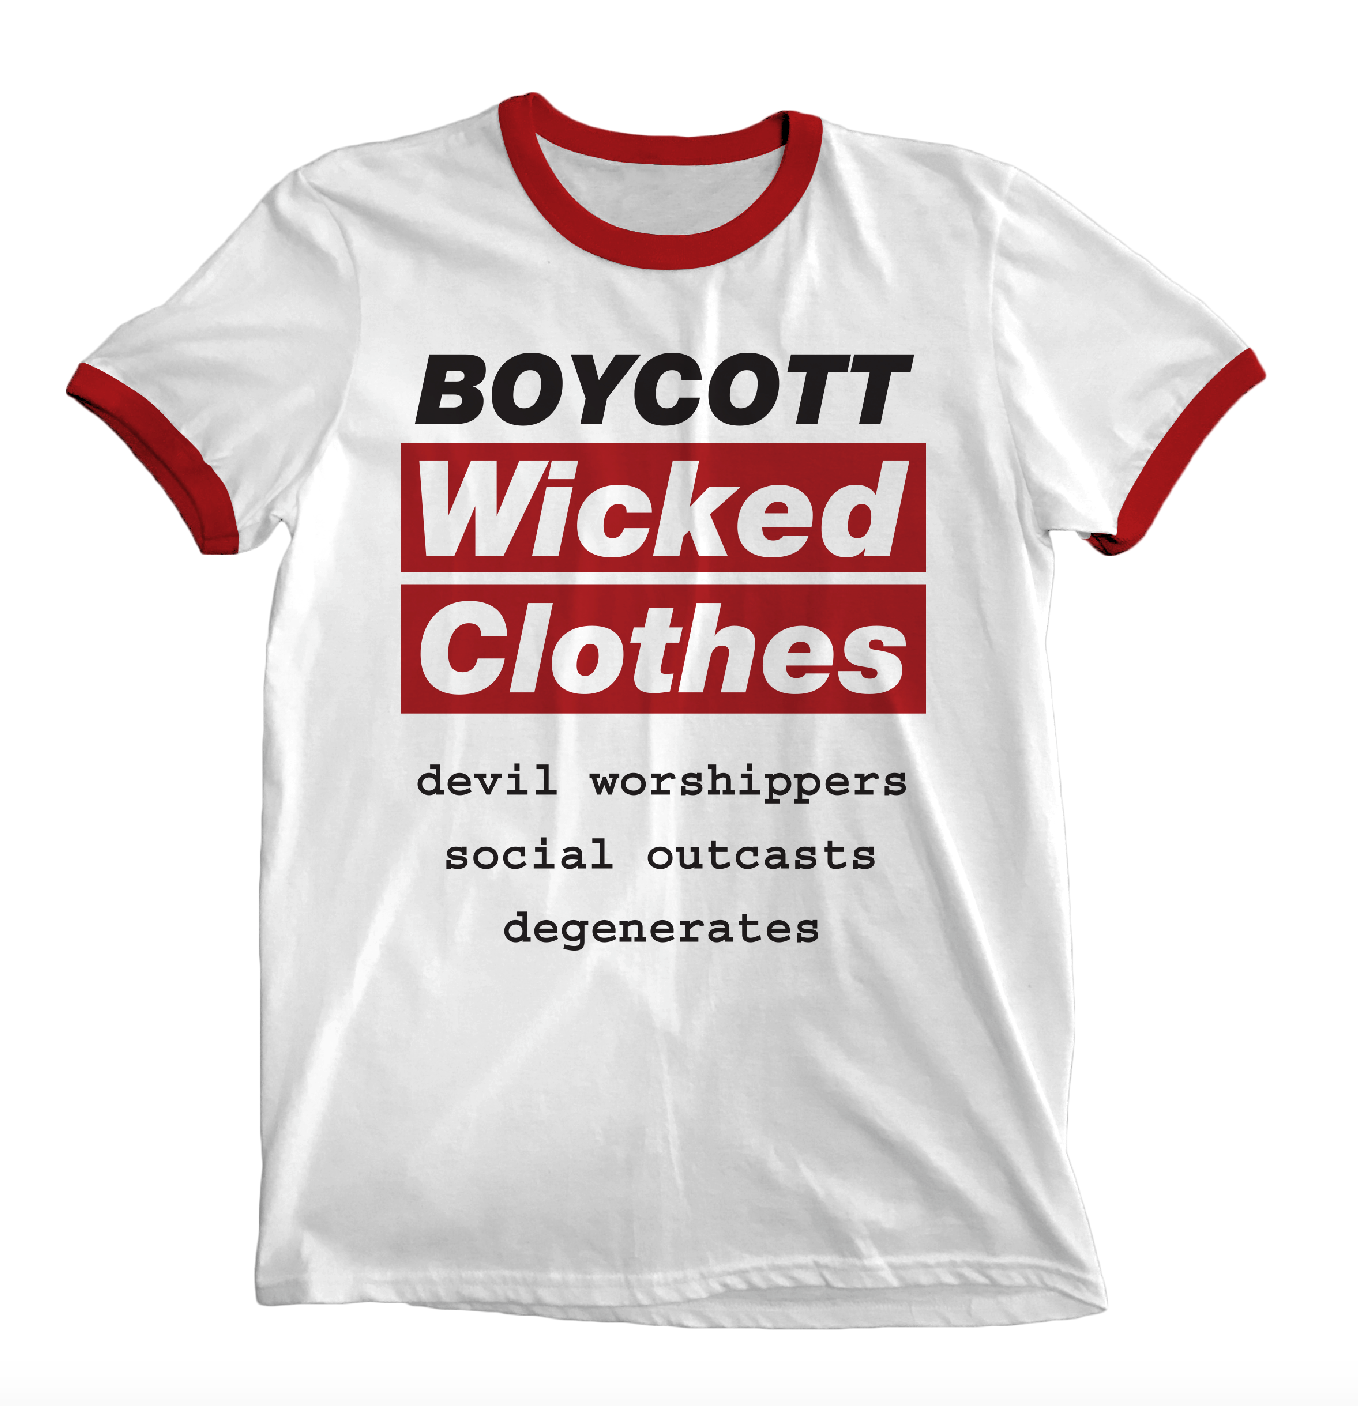 'Boycott Wicked Clothes' Ringer Shirt